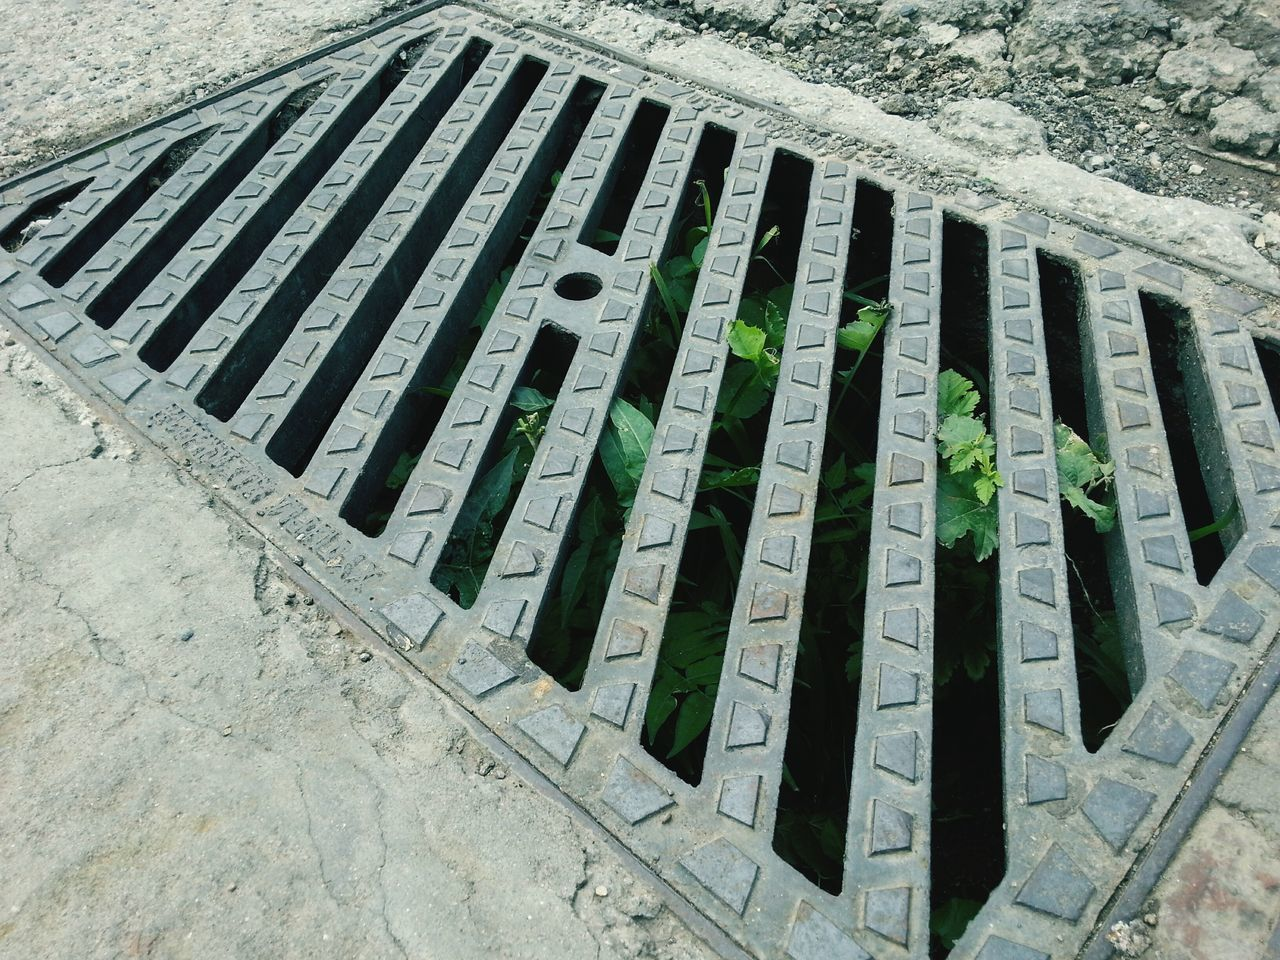 high angle view, day, sewer, outdoors, sewage, no people, close-up